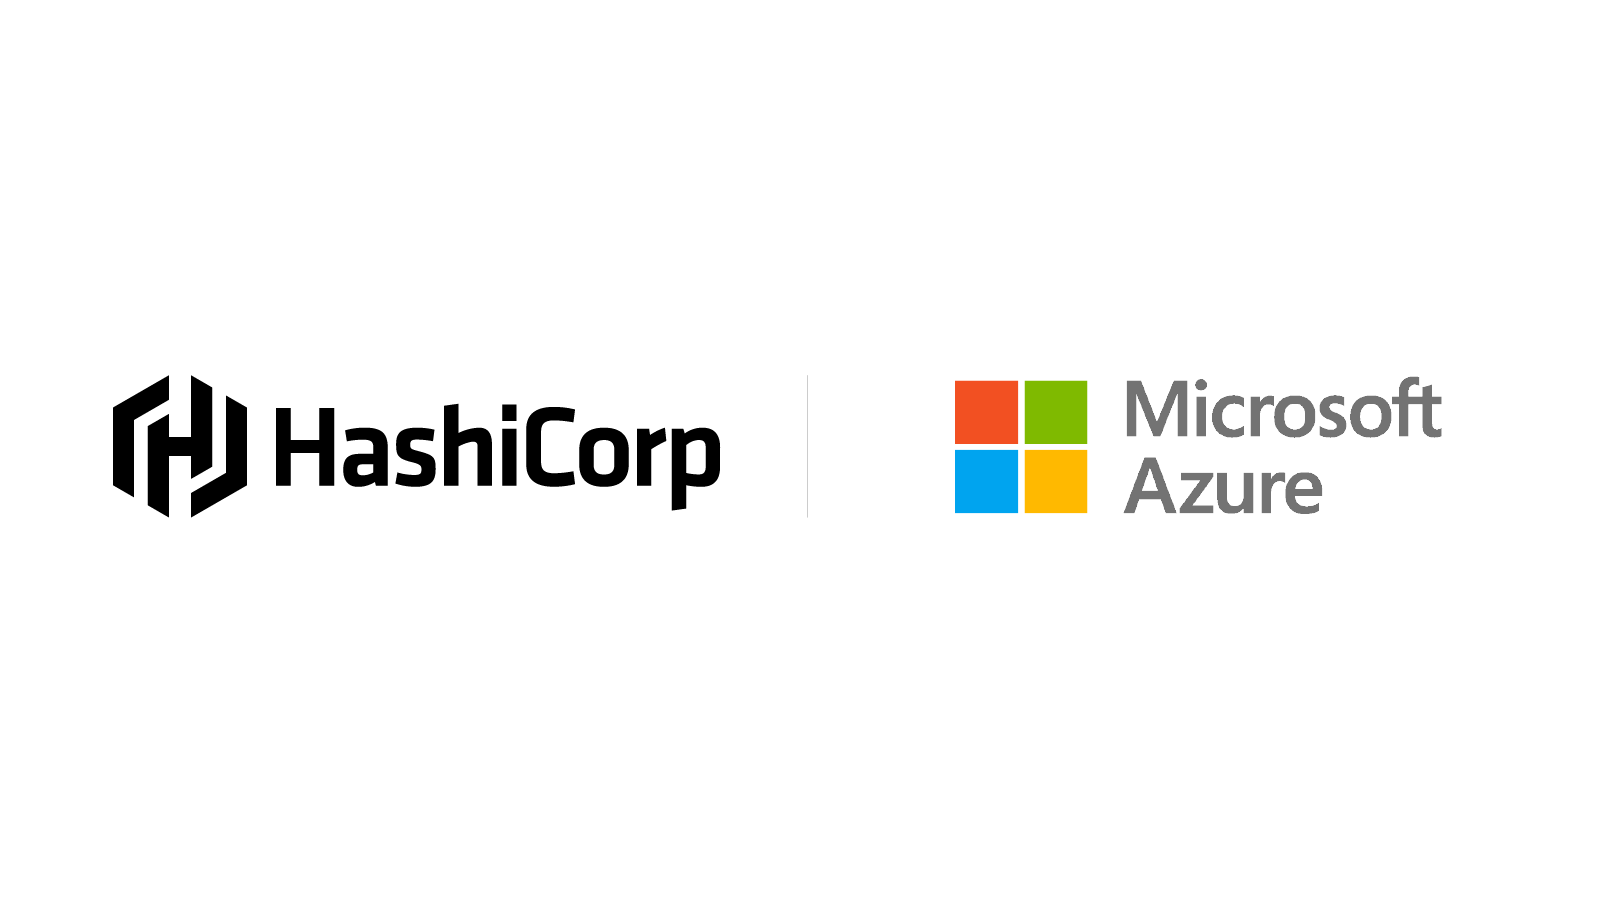 Tooling for the Modern ISV with Microsoft and HashiCorp Image